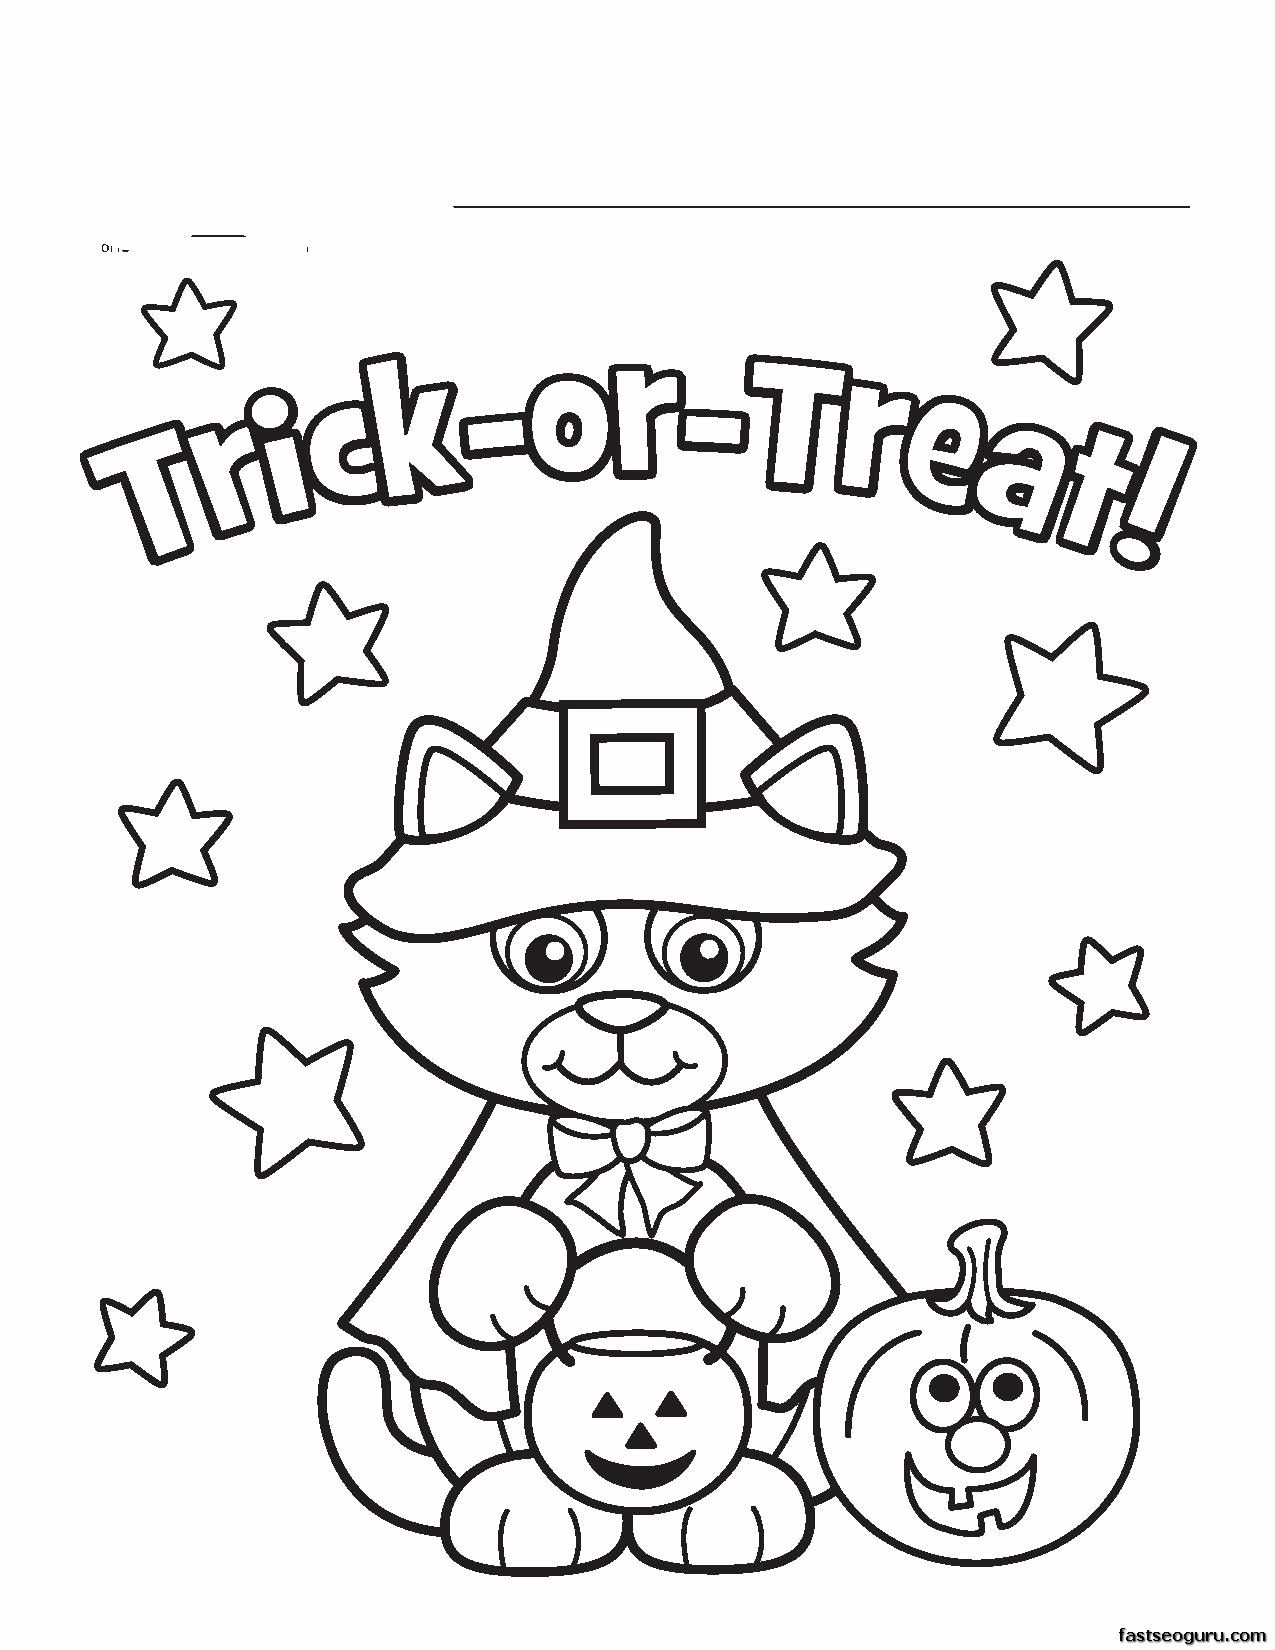 Spongebob Halloween Coloring Pages At Getcolorings